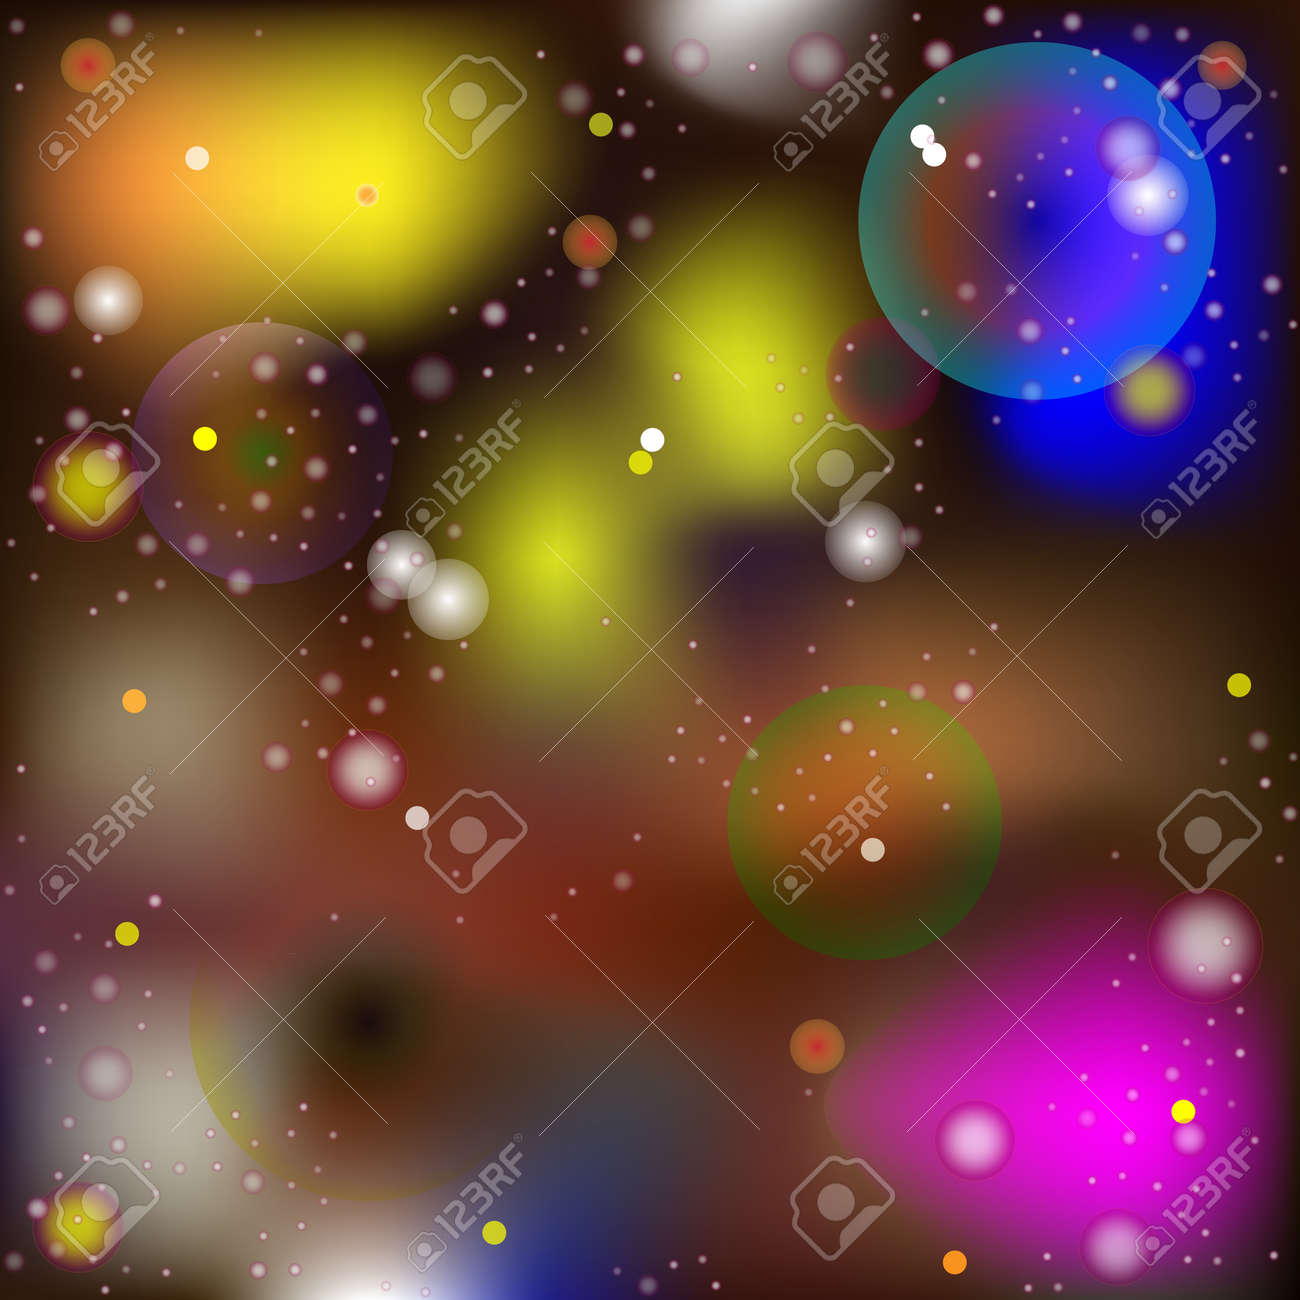 Vector Abstract Image in The Style of a Mysterious Macro and Microworld. Glowing Spheres and Balls Moving in Space, Blurred Background - 153302517